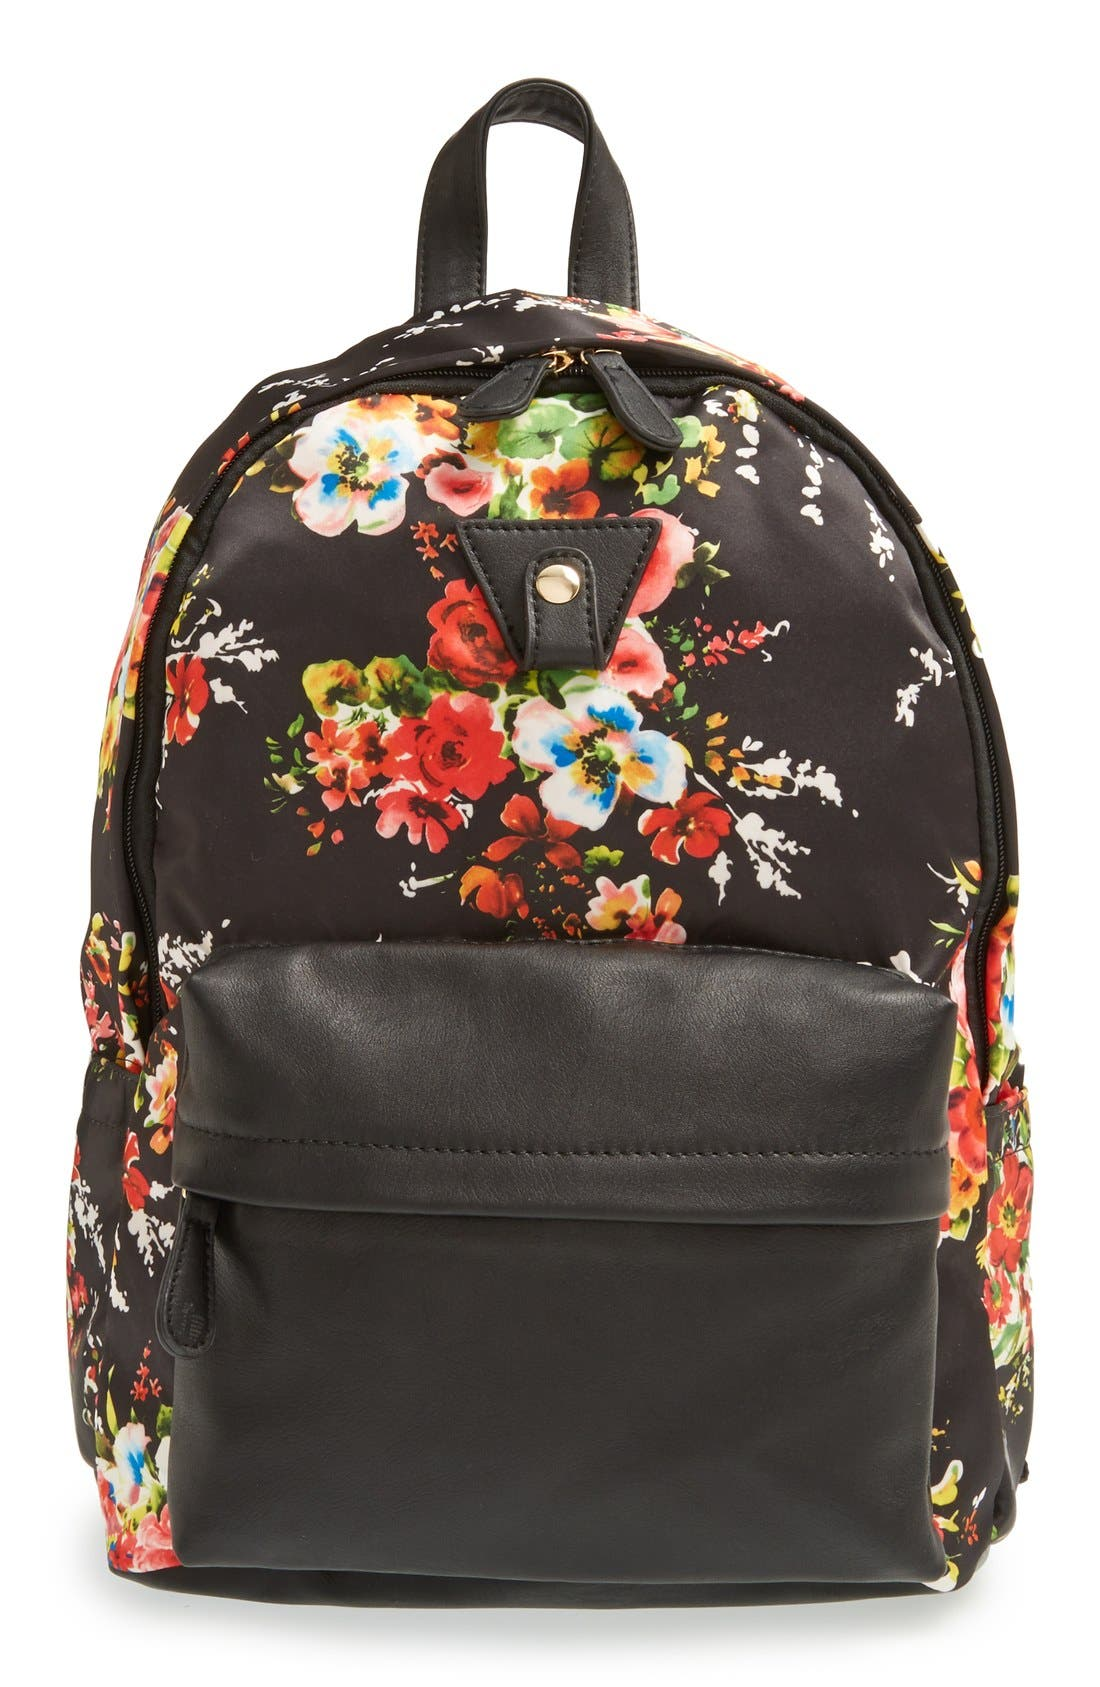 Alternate Image 1 Selected - Nila Anthony Floral Backpack